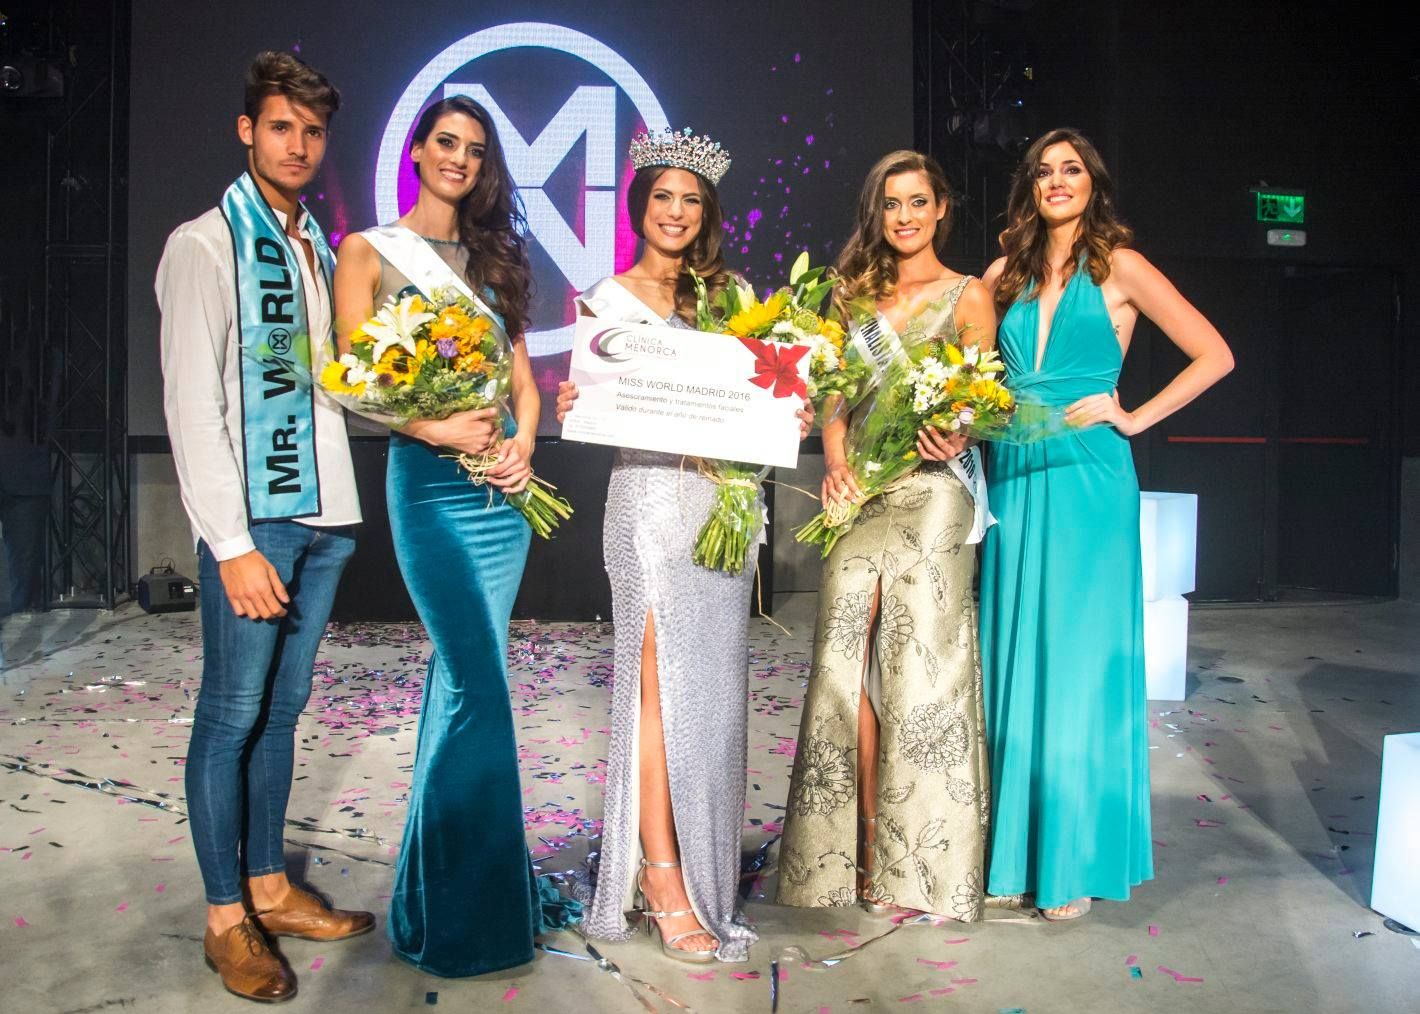 Miss_World_Madrid_Spain_Clinica_Menorca (3)